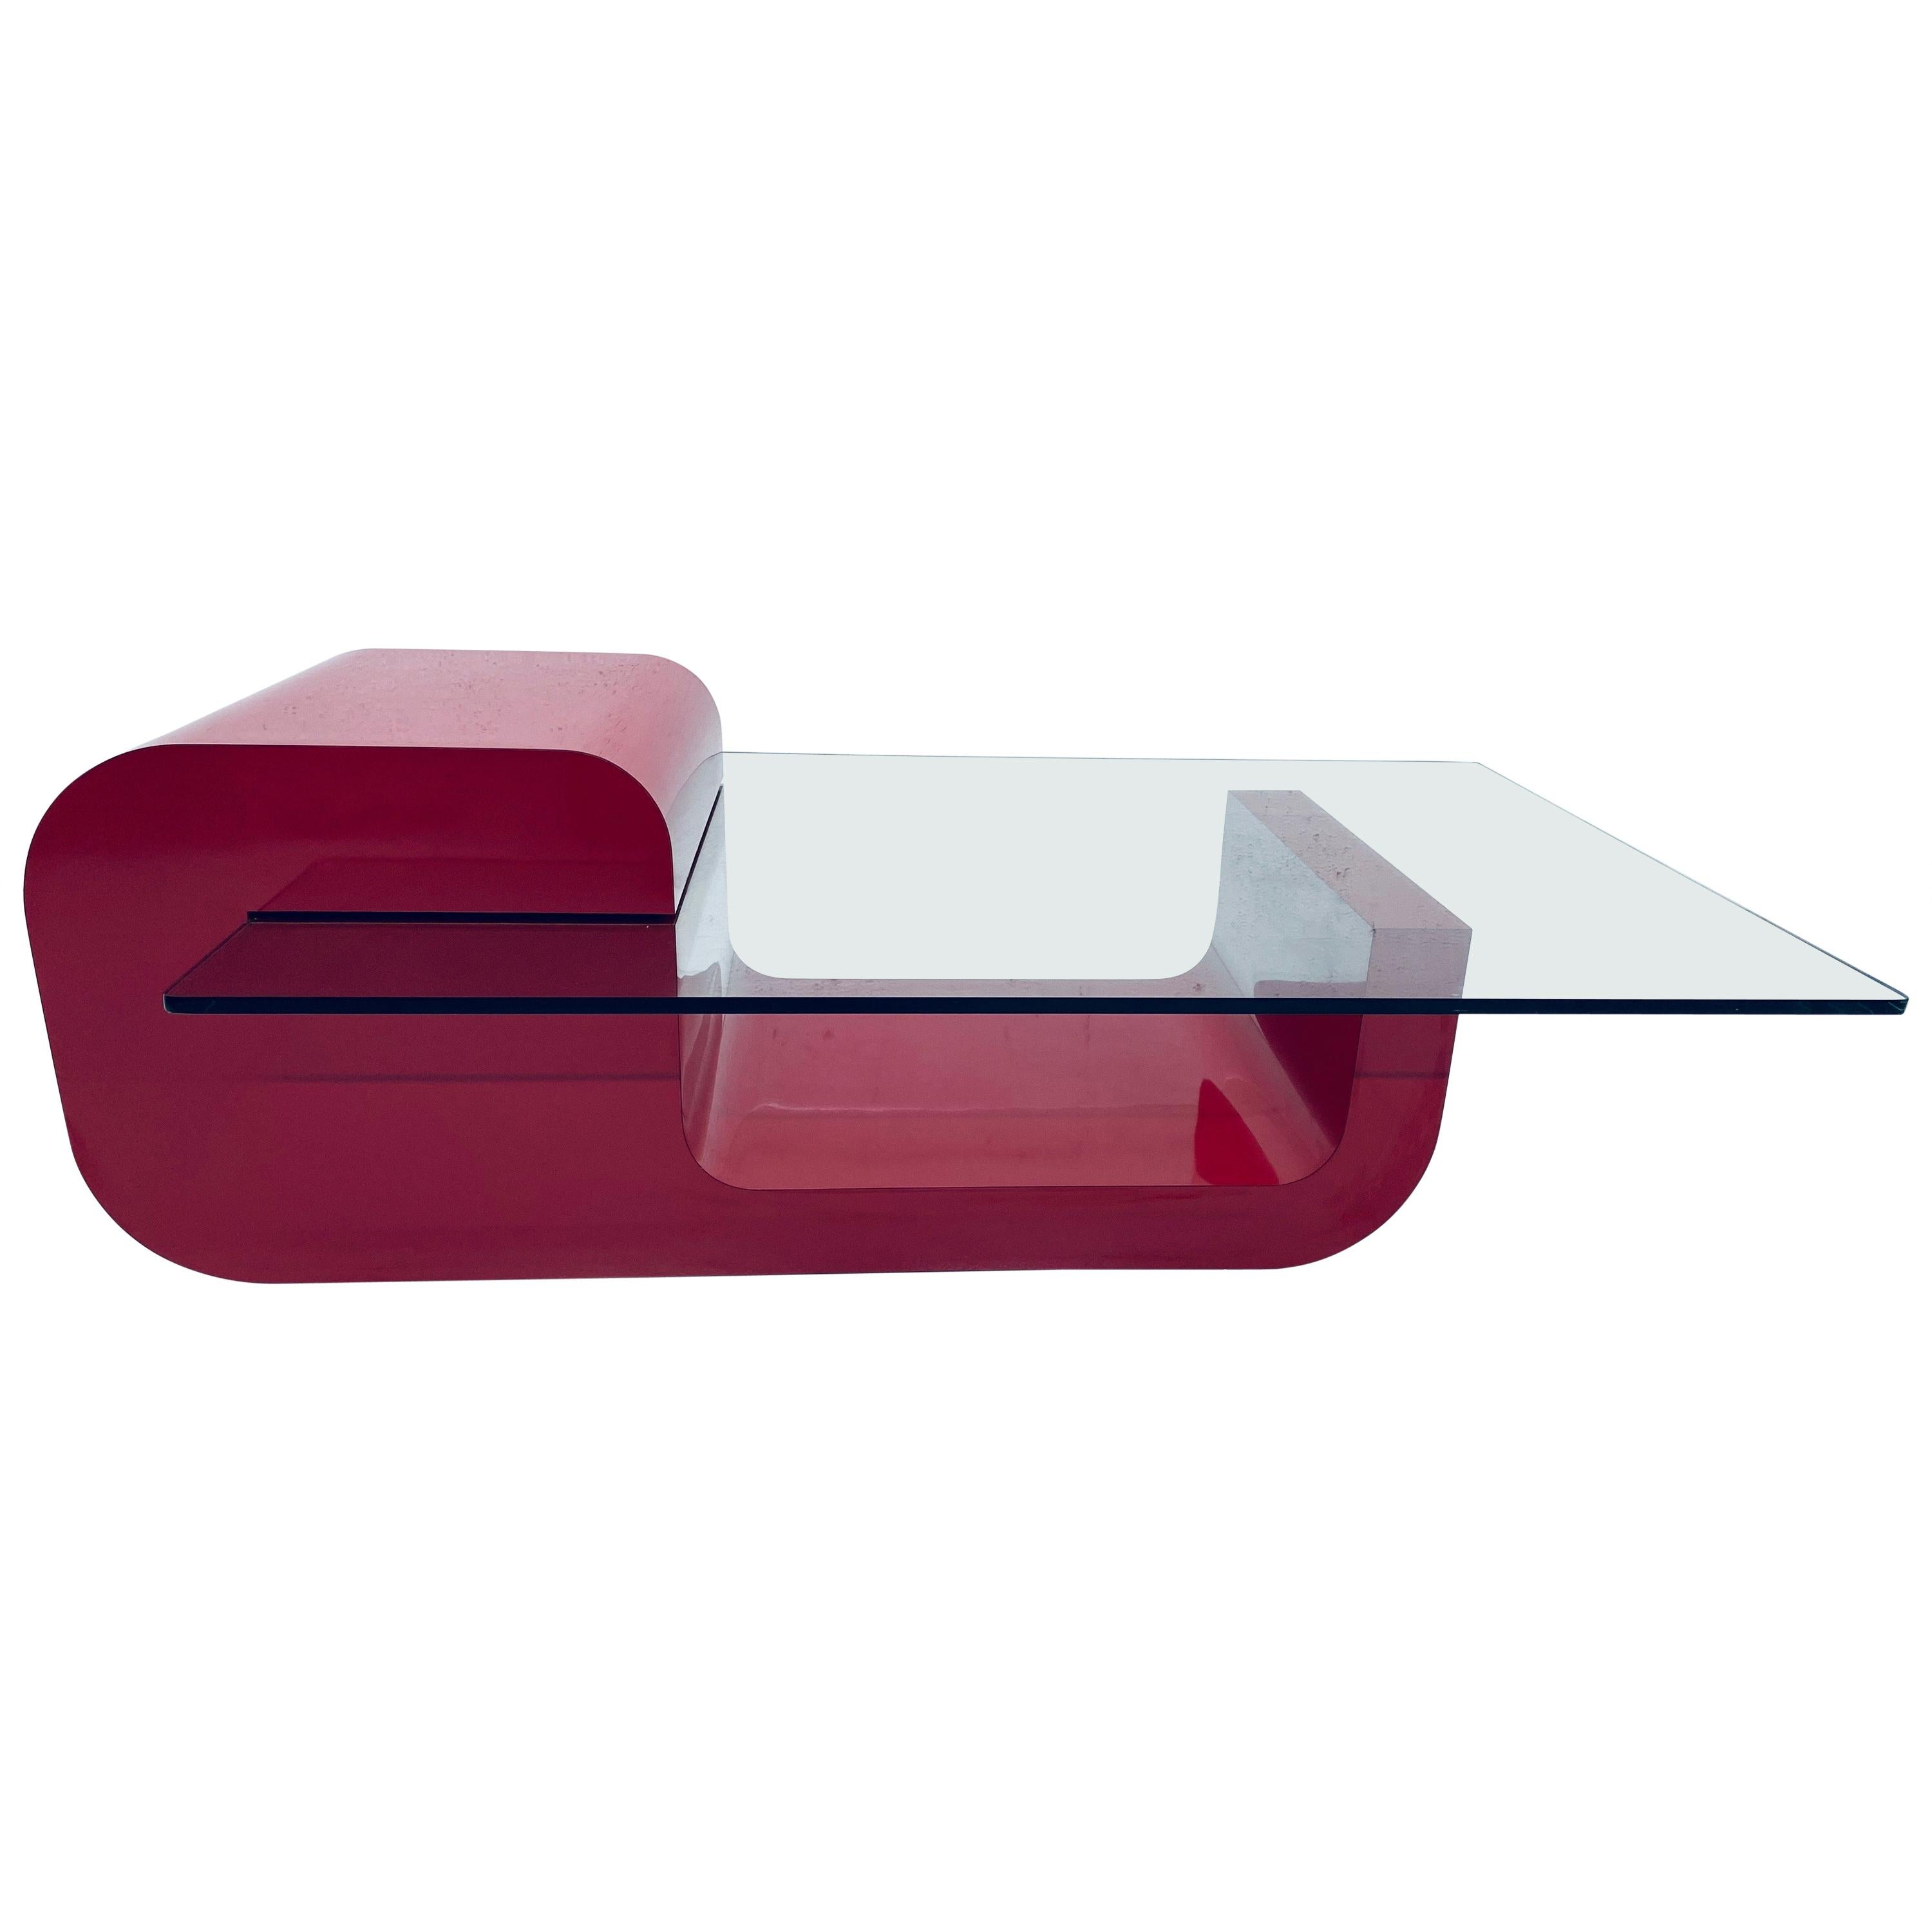 Pierre Cardin Attributed Red Laminate and Glass Coffee Table